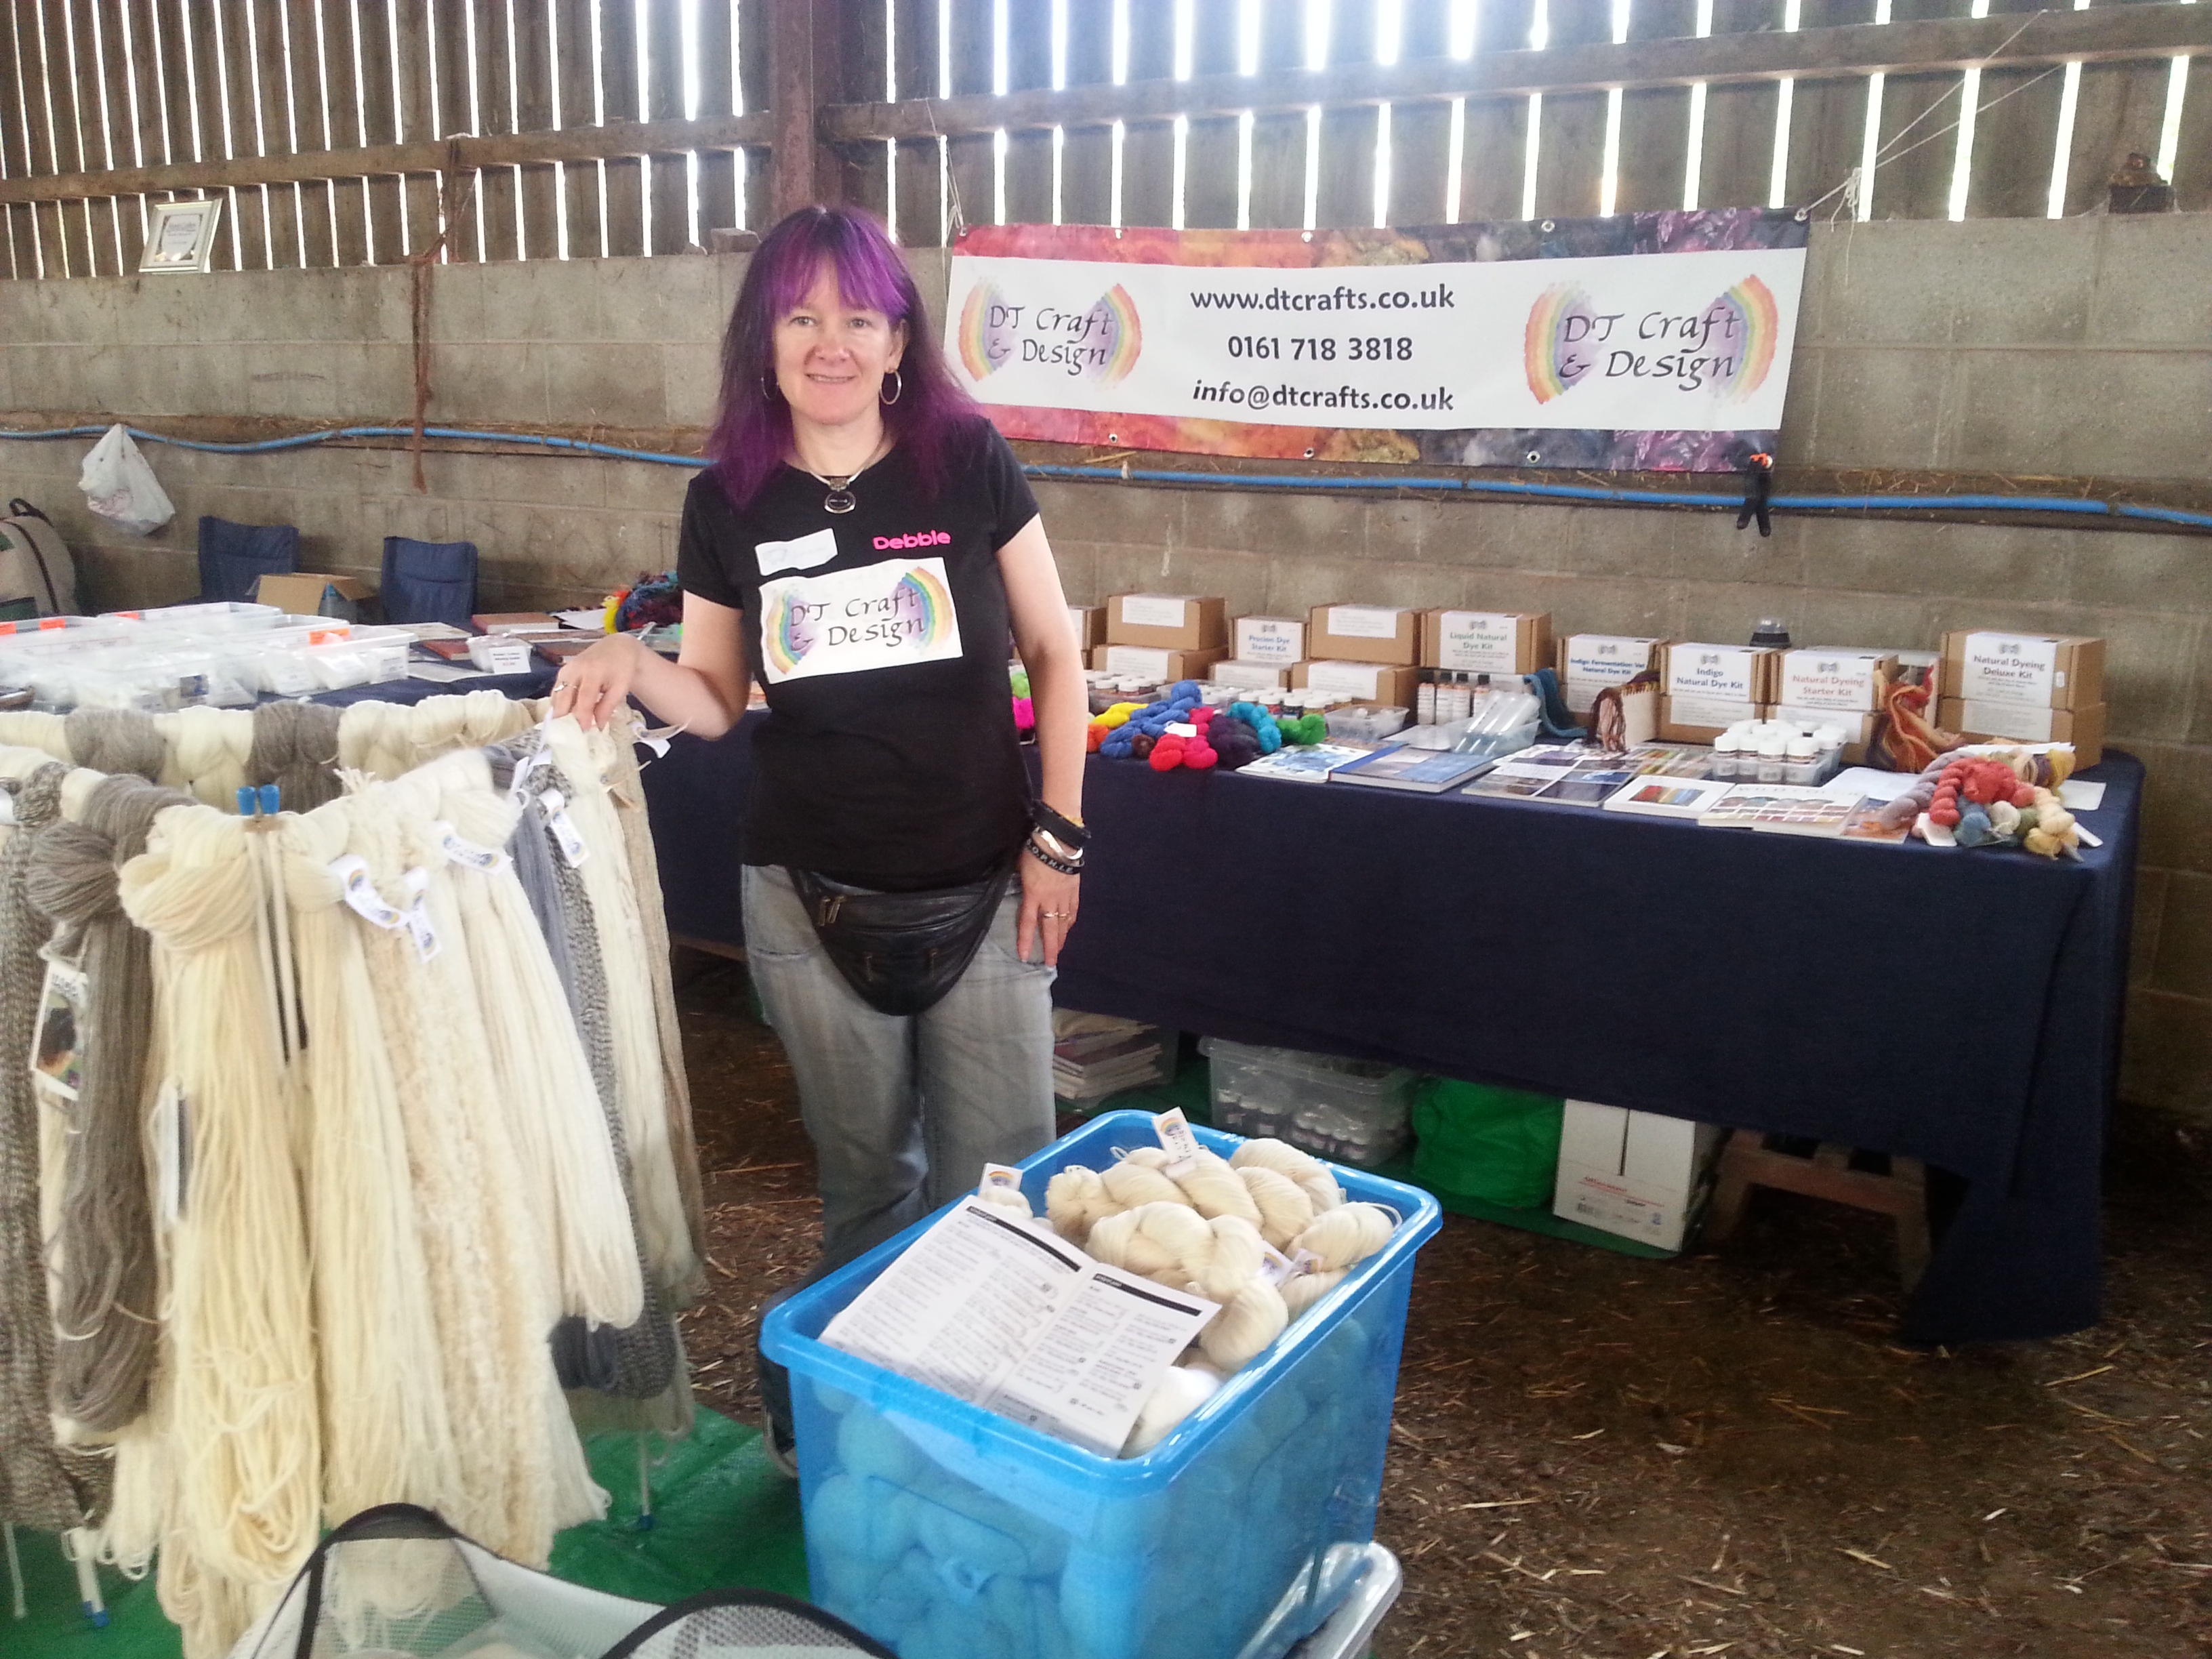 debbie tomkies at the dt craft and design stall at the wool experience blaze farm wildboar clough